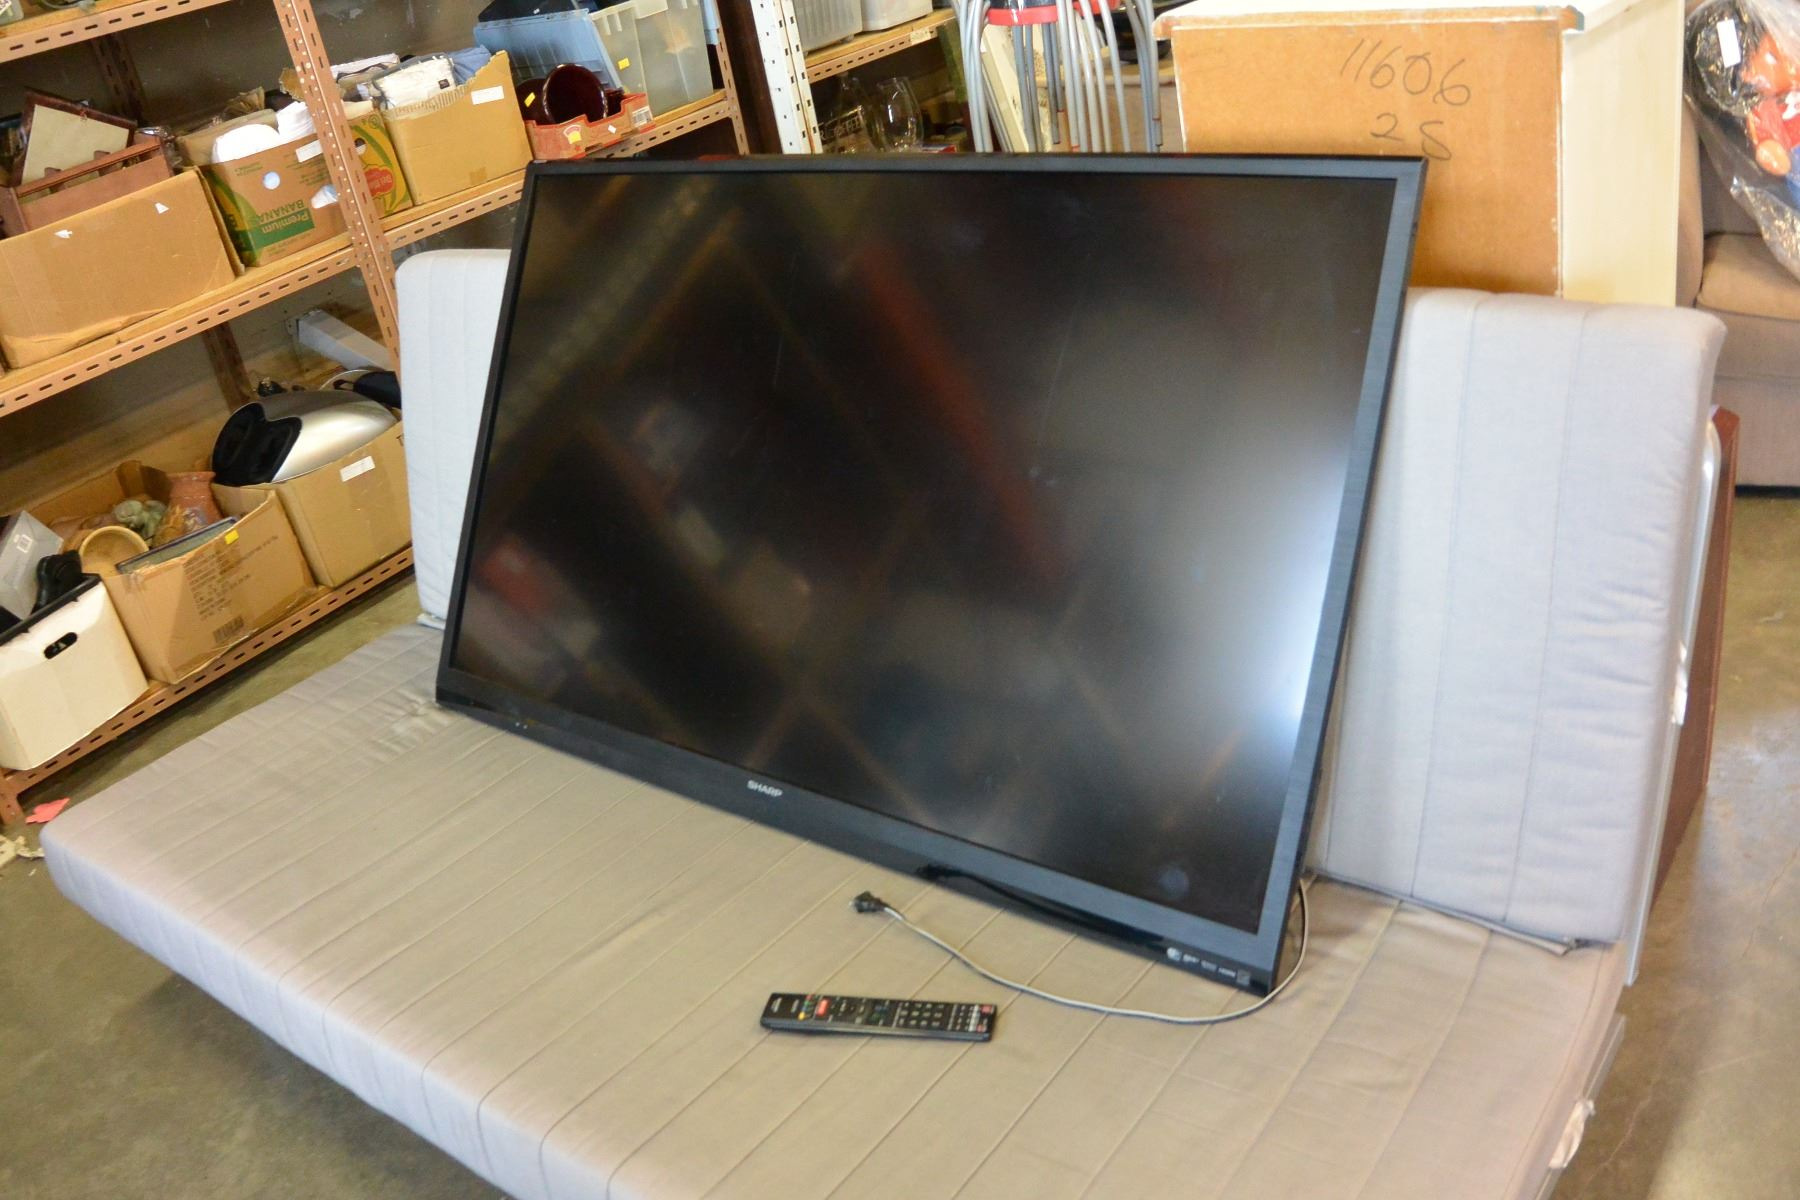 SHARP AQUOS 60 INCH LCD TV WITH REMOTE, WIFI AND APPS, NETFLIX, TESTED  WORKING